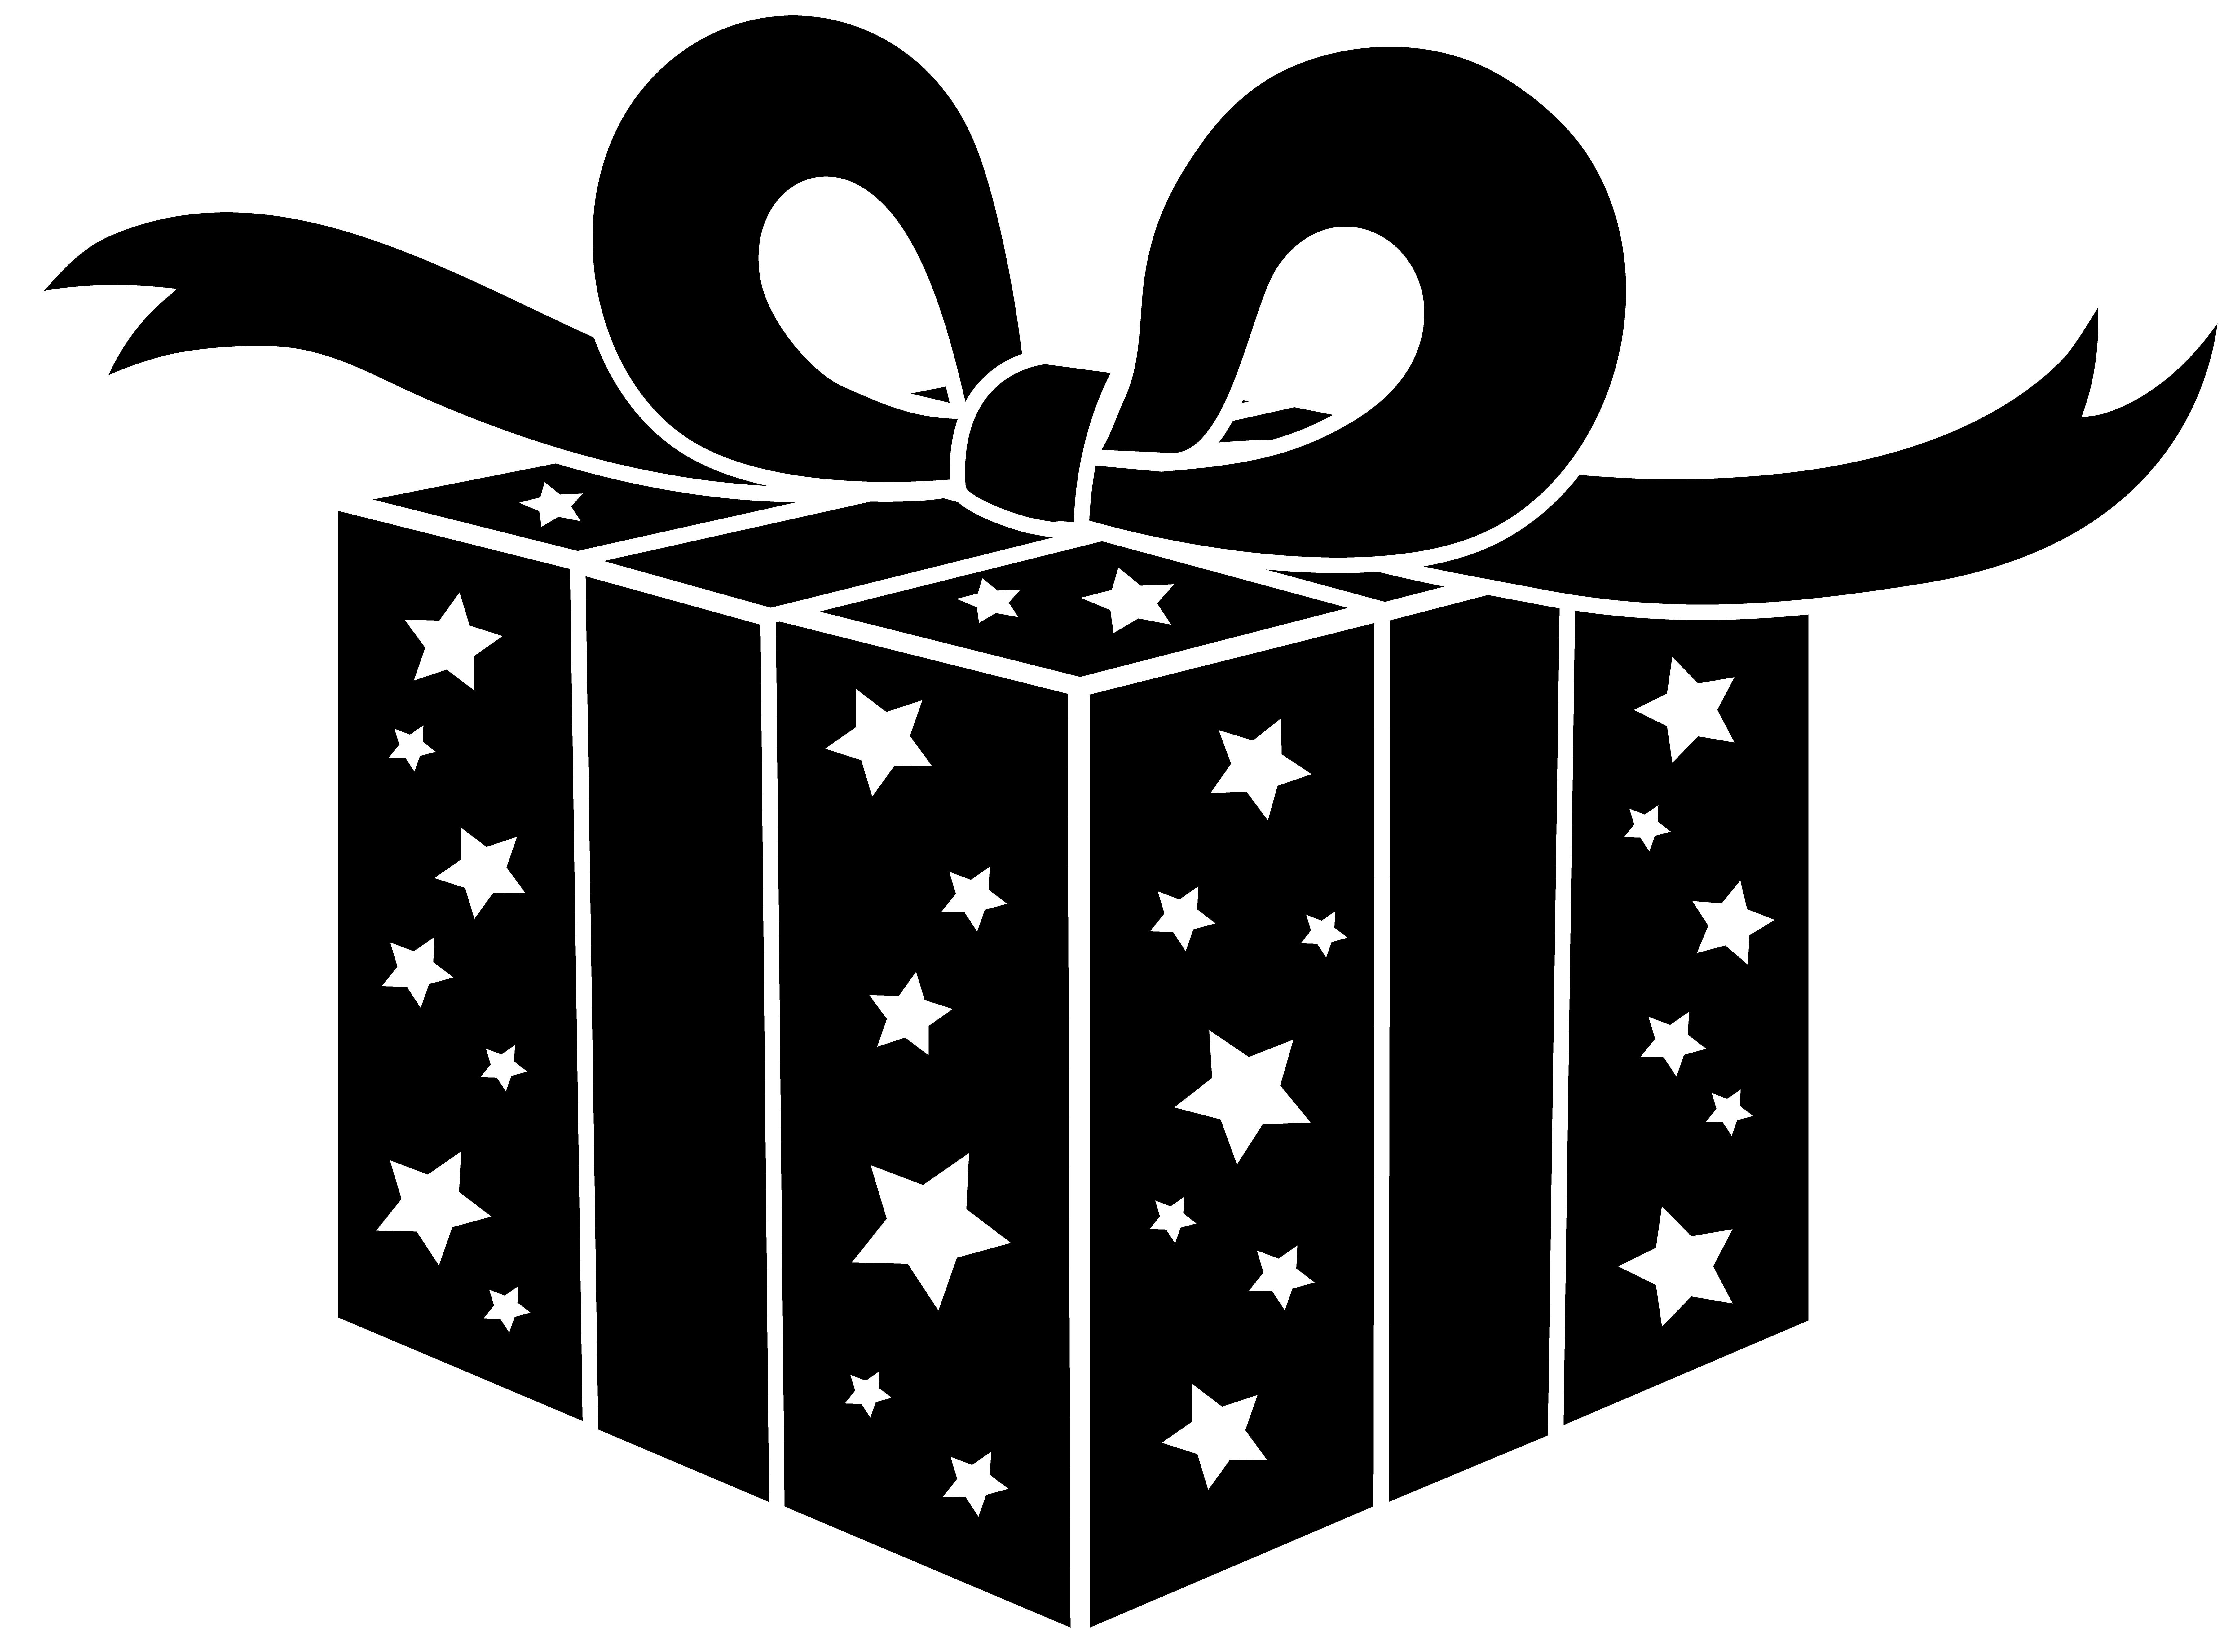 Presents png file black. Gift clipart outline